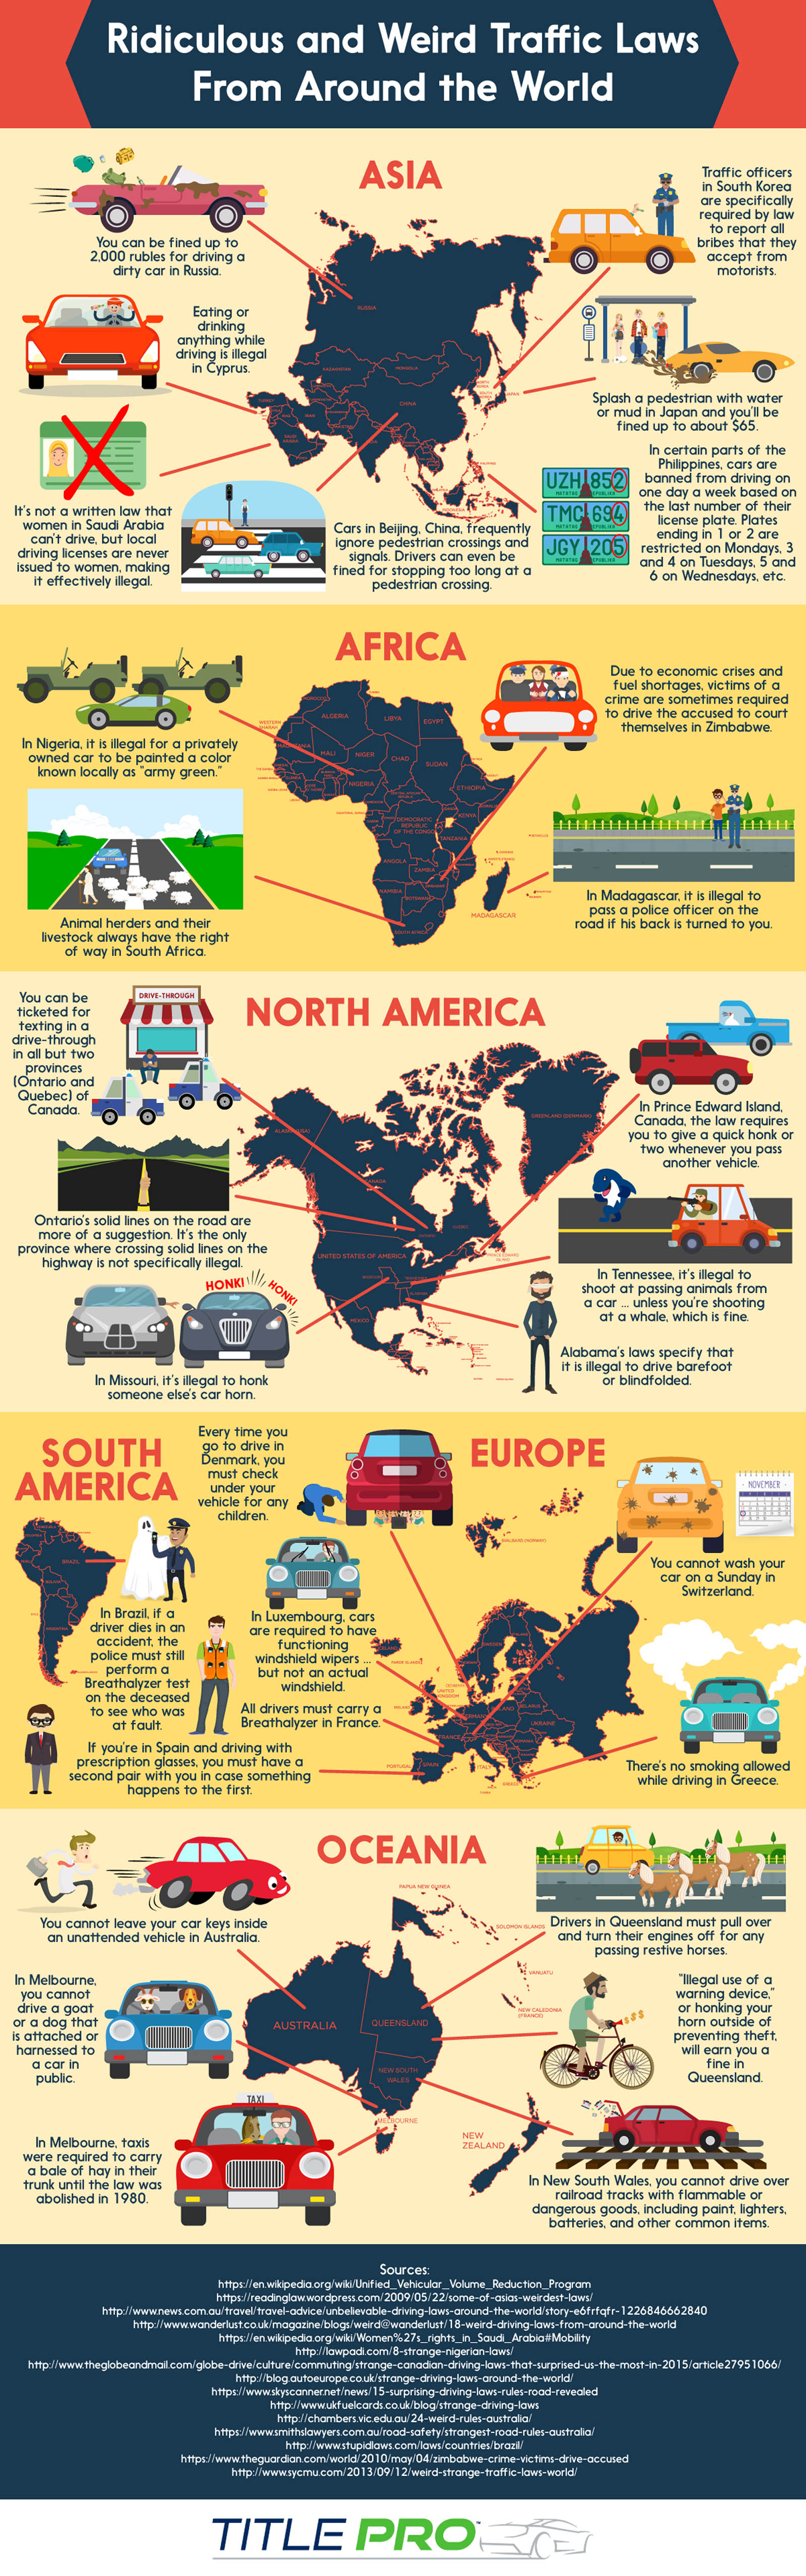 Strangely Shocking Traffic Laws Around The World - Infographic